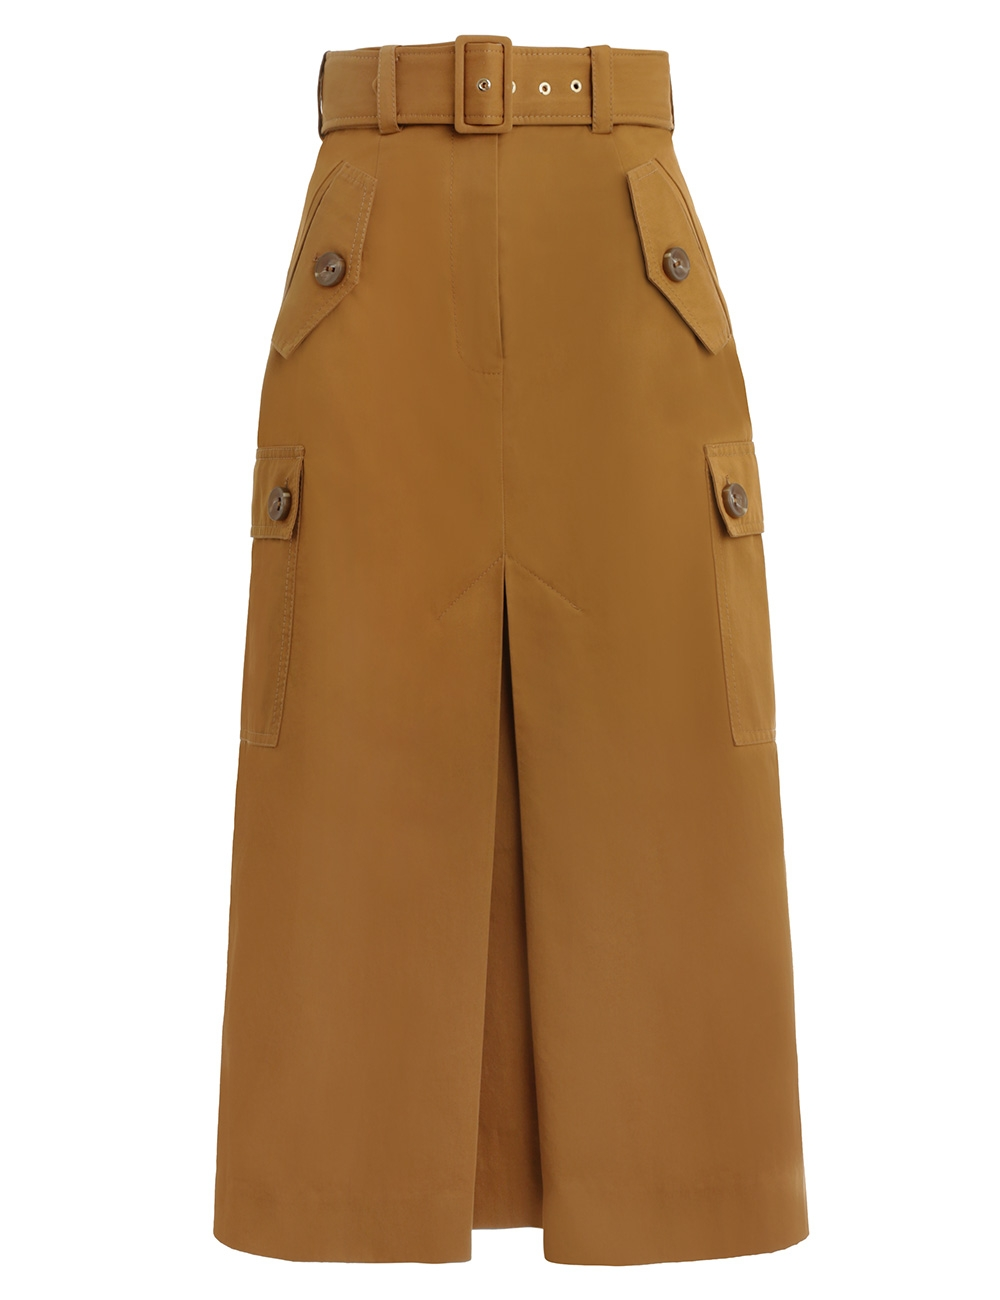 Espionage Army Skirt